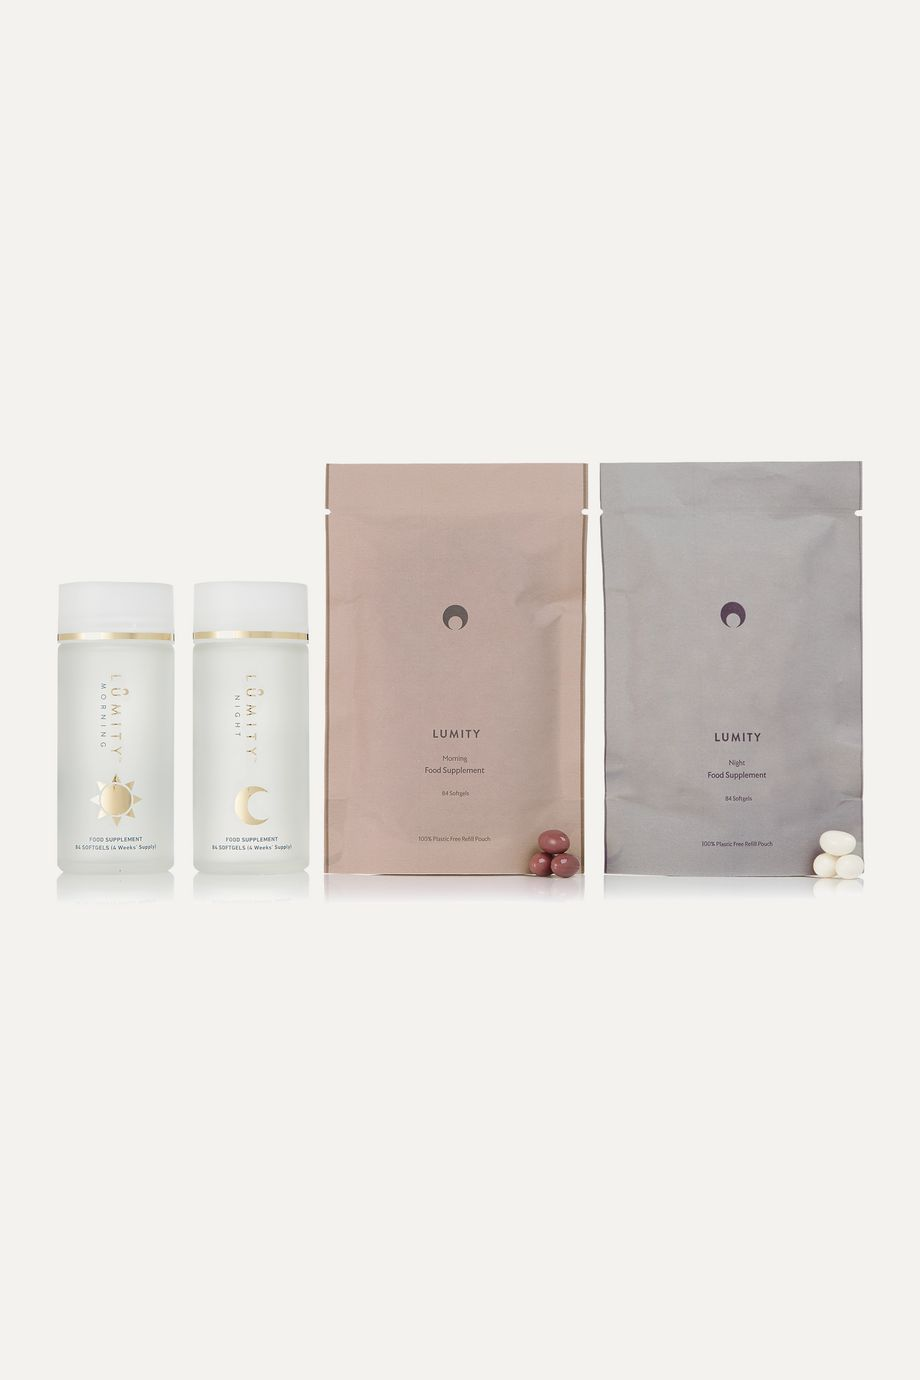 Lumity Morning and Night Supplements, Three Month Kit